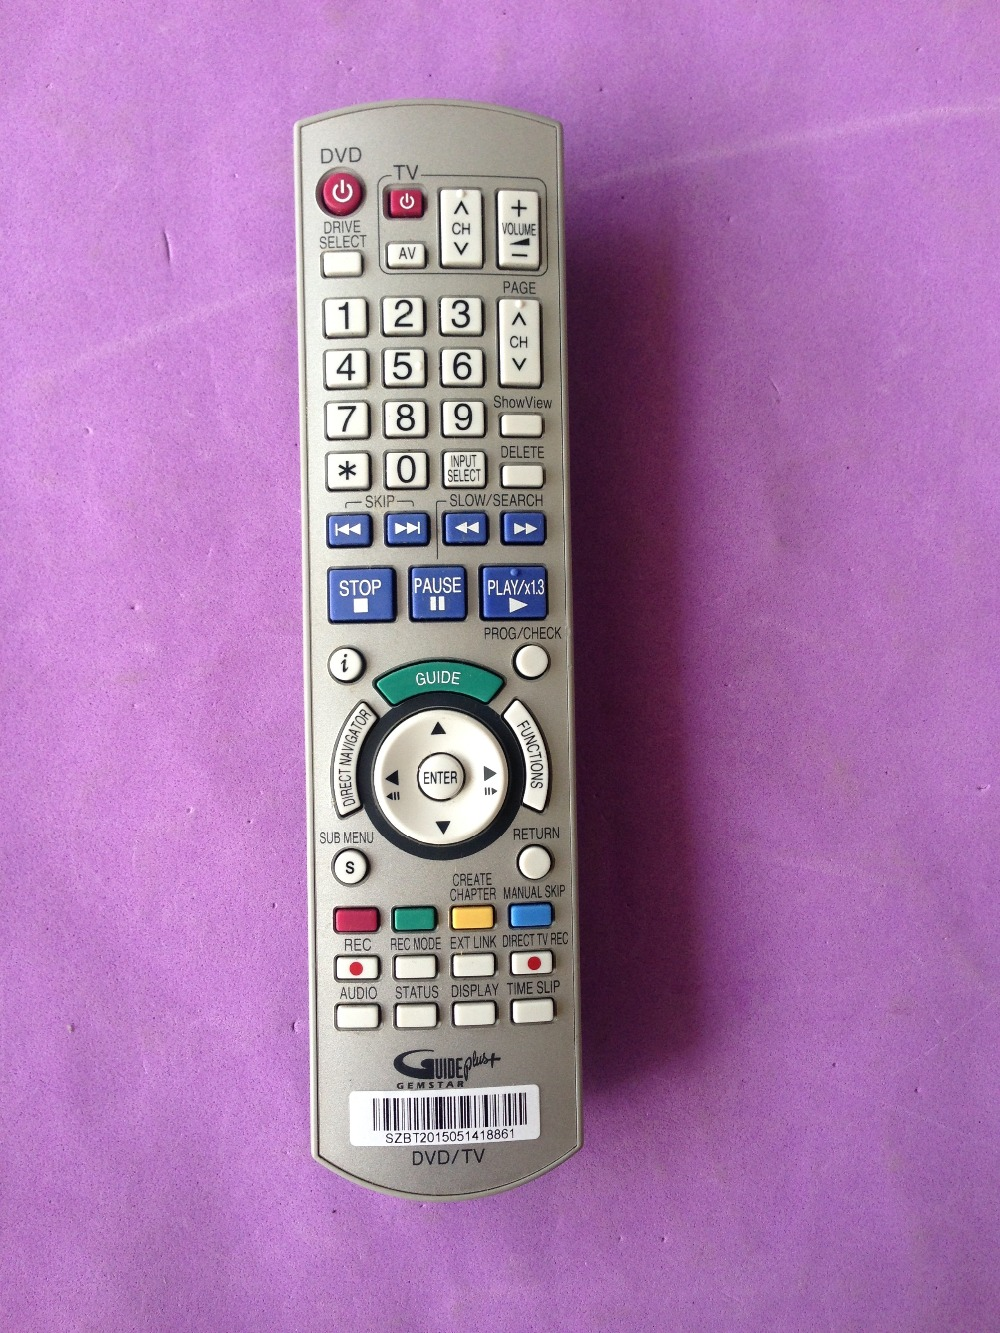 FIT FOR Panasonic DMR-EH55 DMR-EH55S DVDR/HDD Recorder Remote Control EUR7659Y60(China (Mainland))